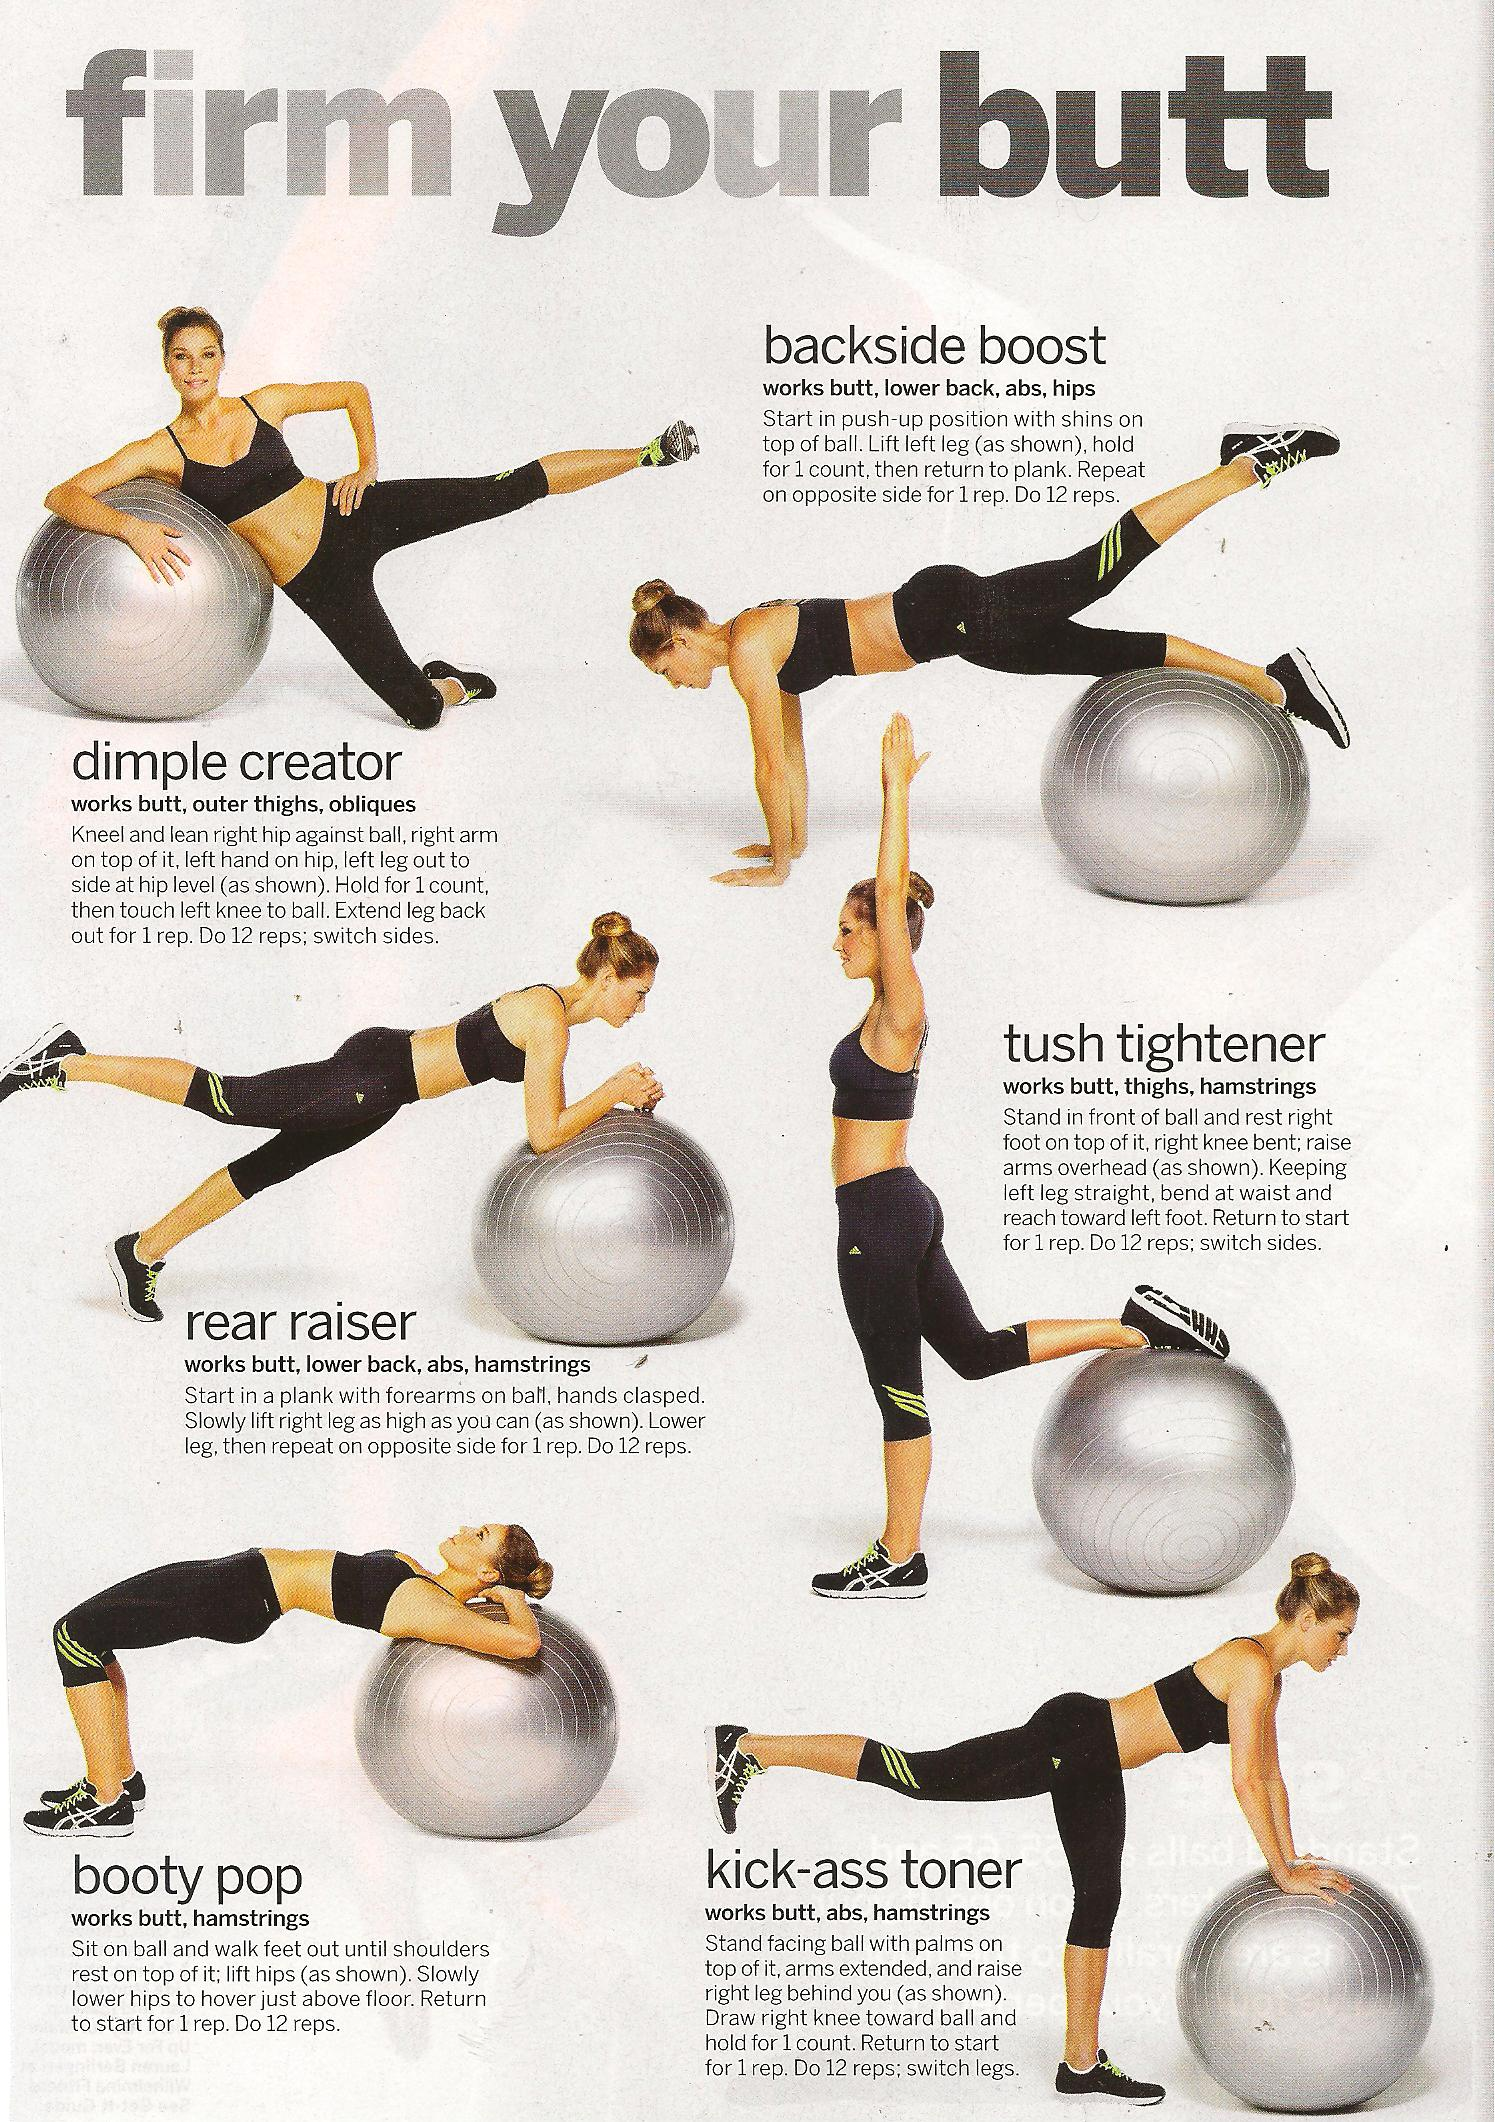 Ility Ball Workouts